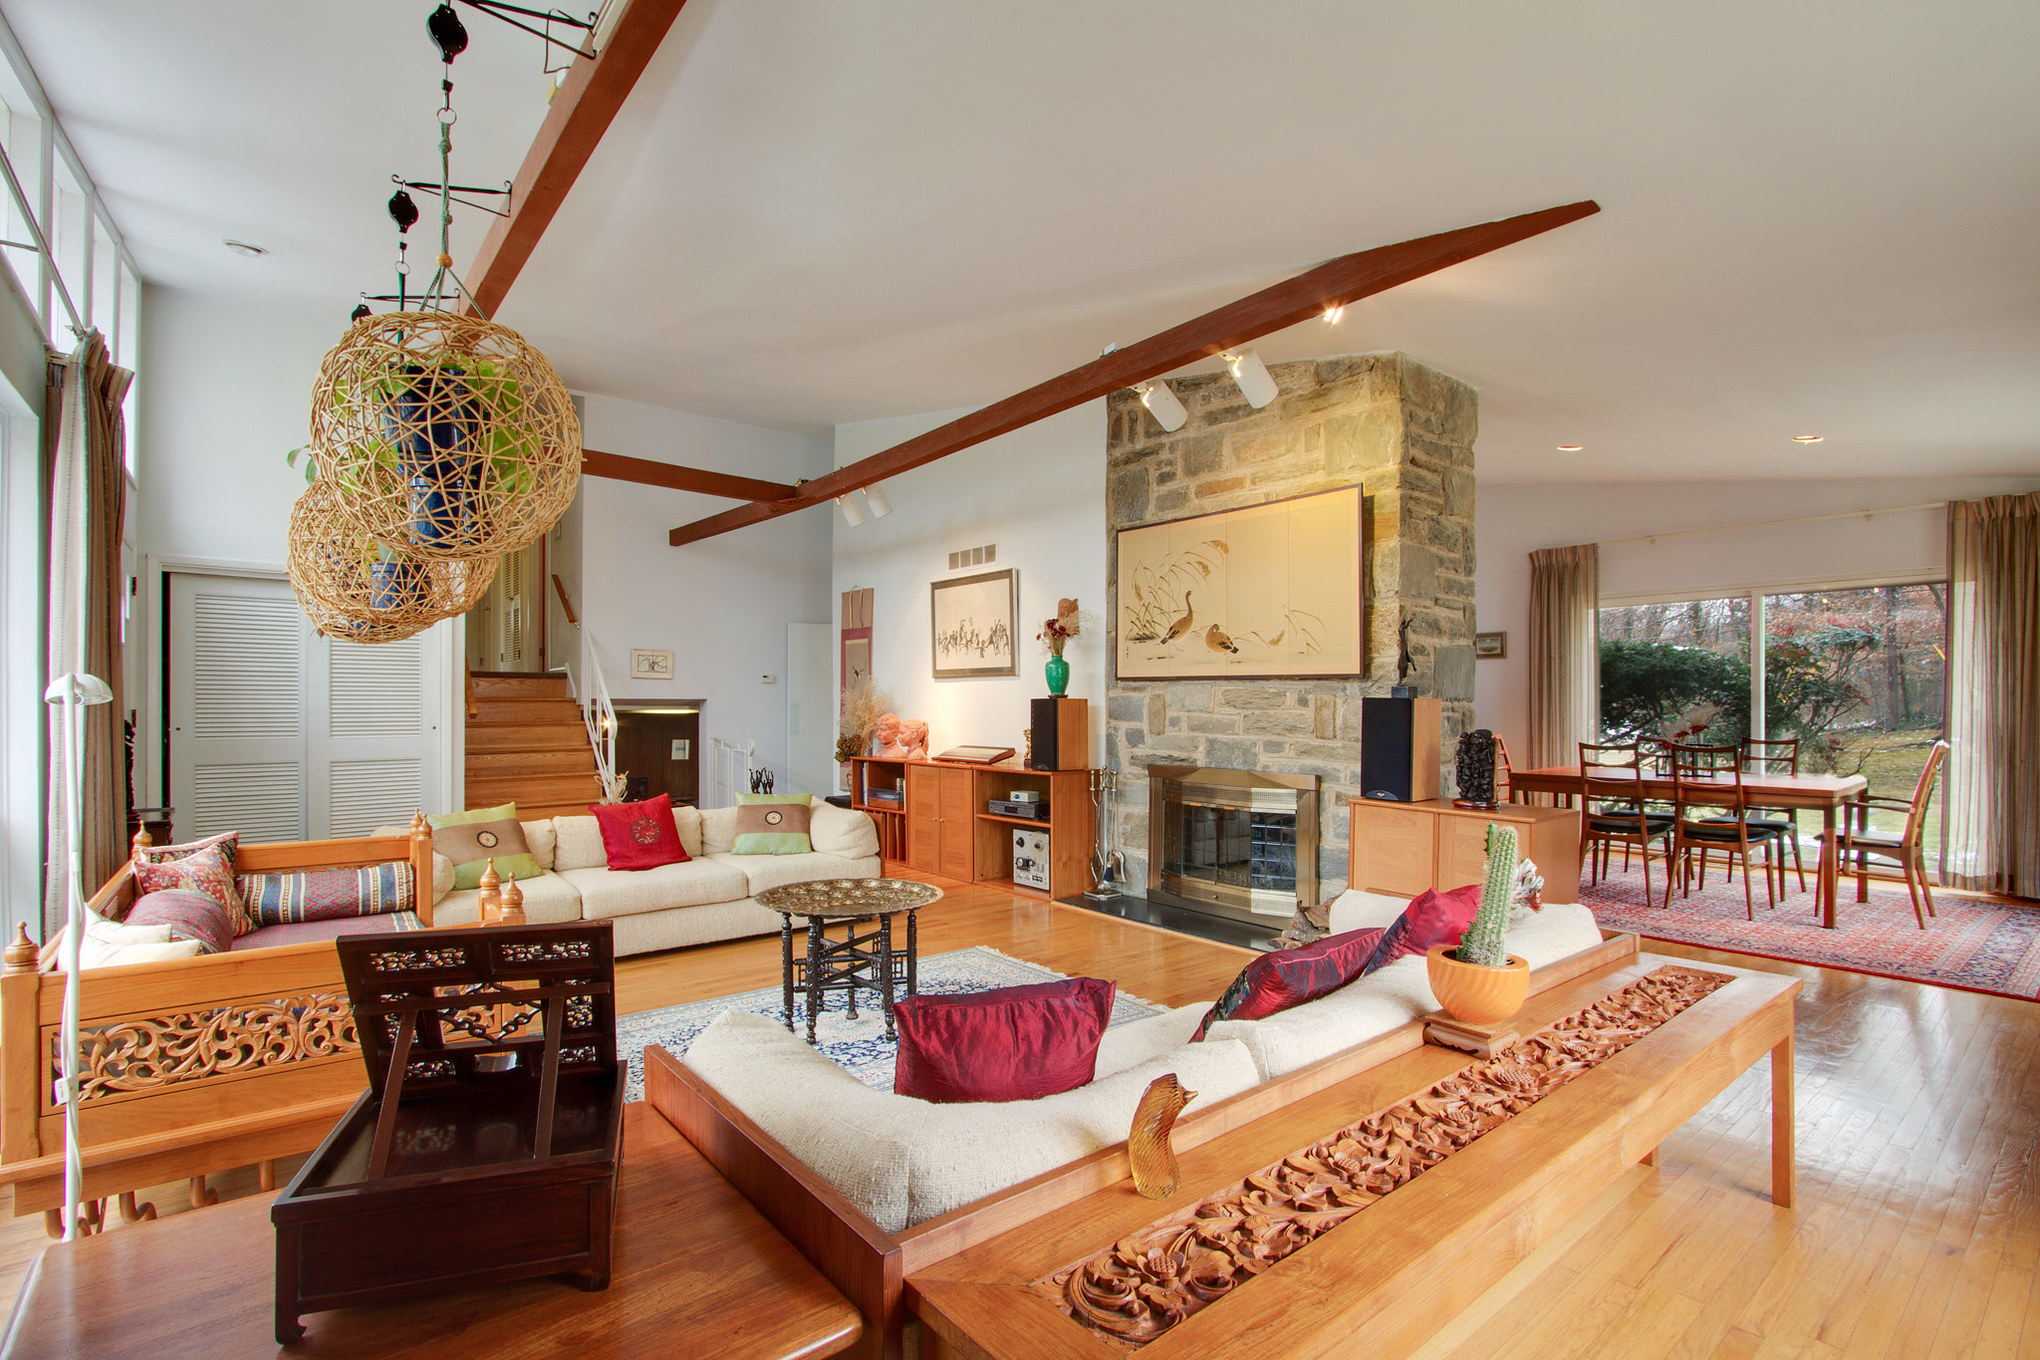 A large living room with vaulted ceilings, a wall of windows, a floor-to-ceiling fireplace, and exposed beams.